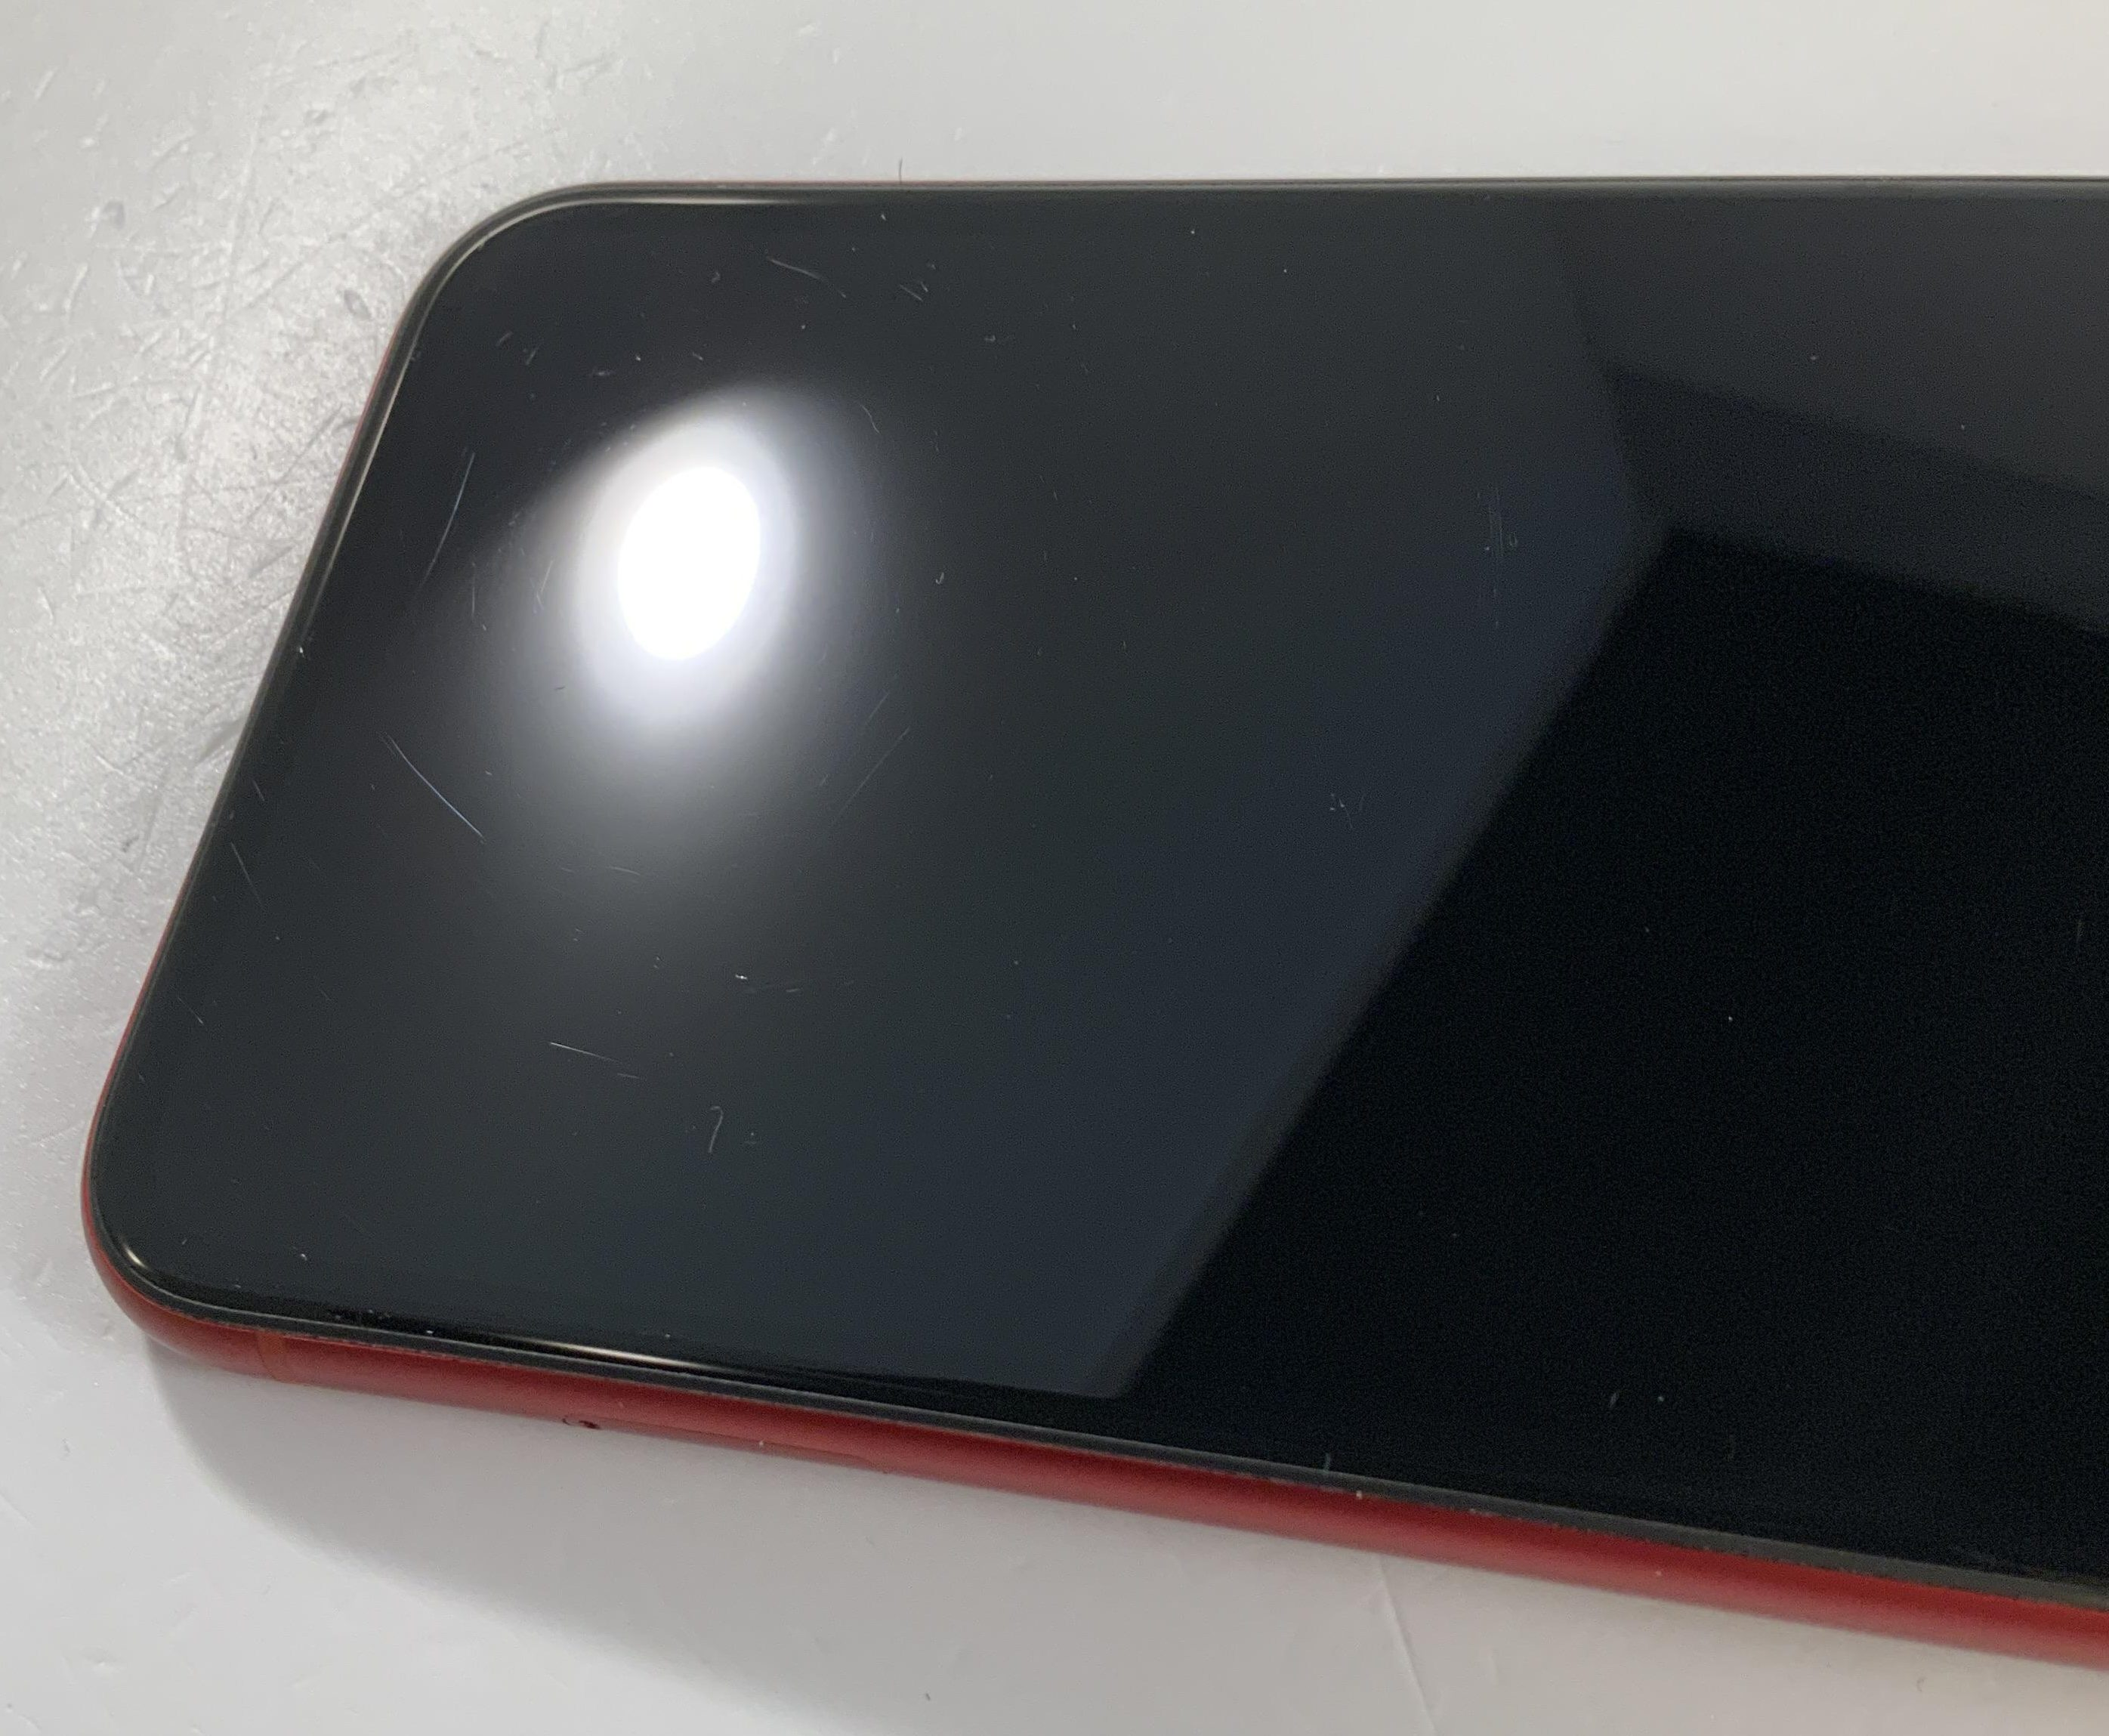 iPhone XR 64GB, 64GB, Red, immagine 3